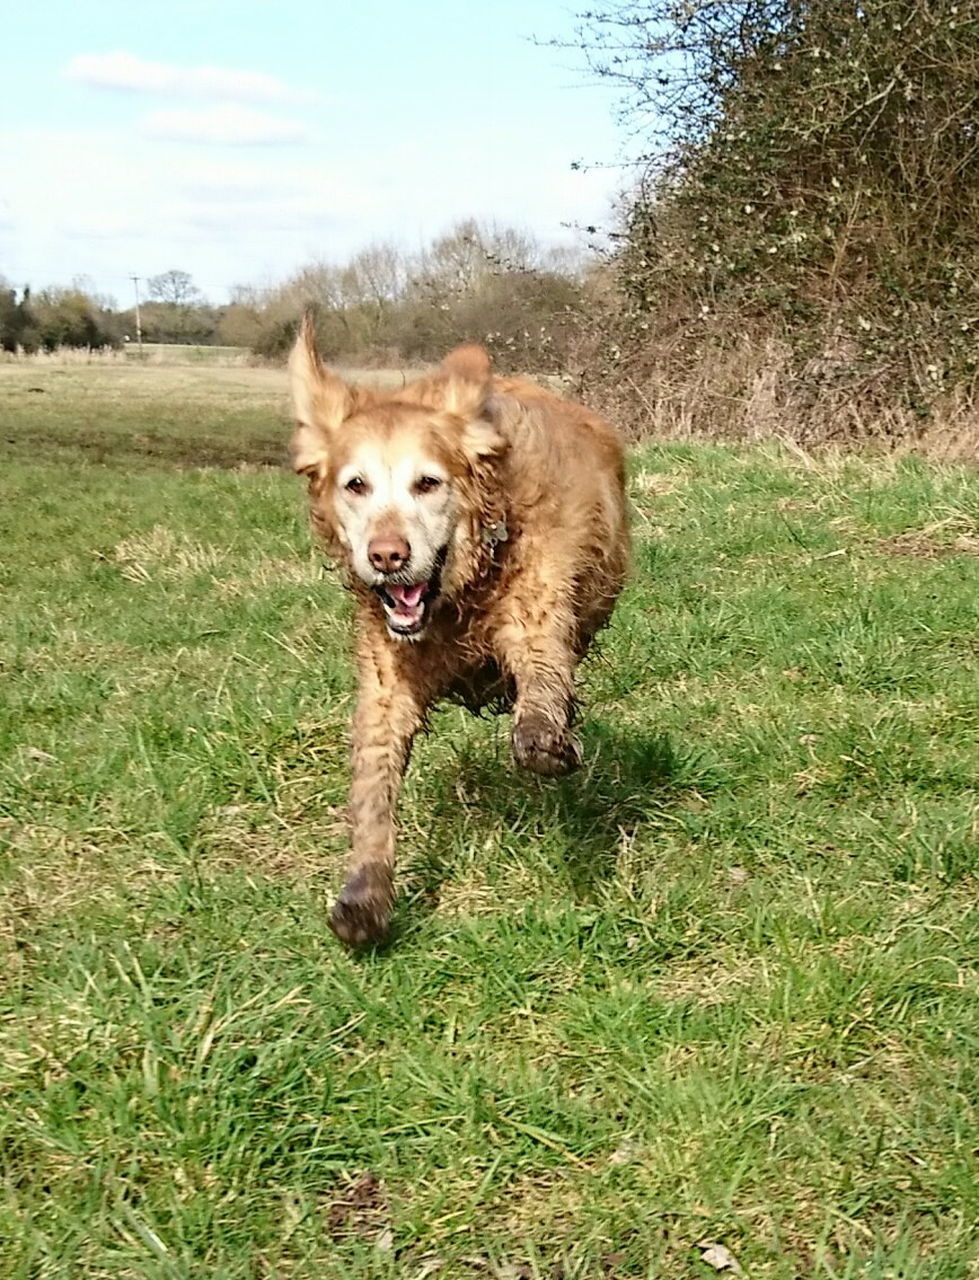 dog, animal themes, mammal, pets, domestic animals, grass, one animal, running, field, day, outdoors, full length, nature, motion, water, no people, growth, portrait, sky